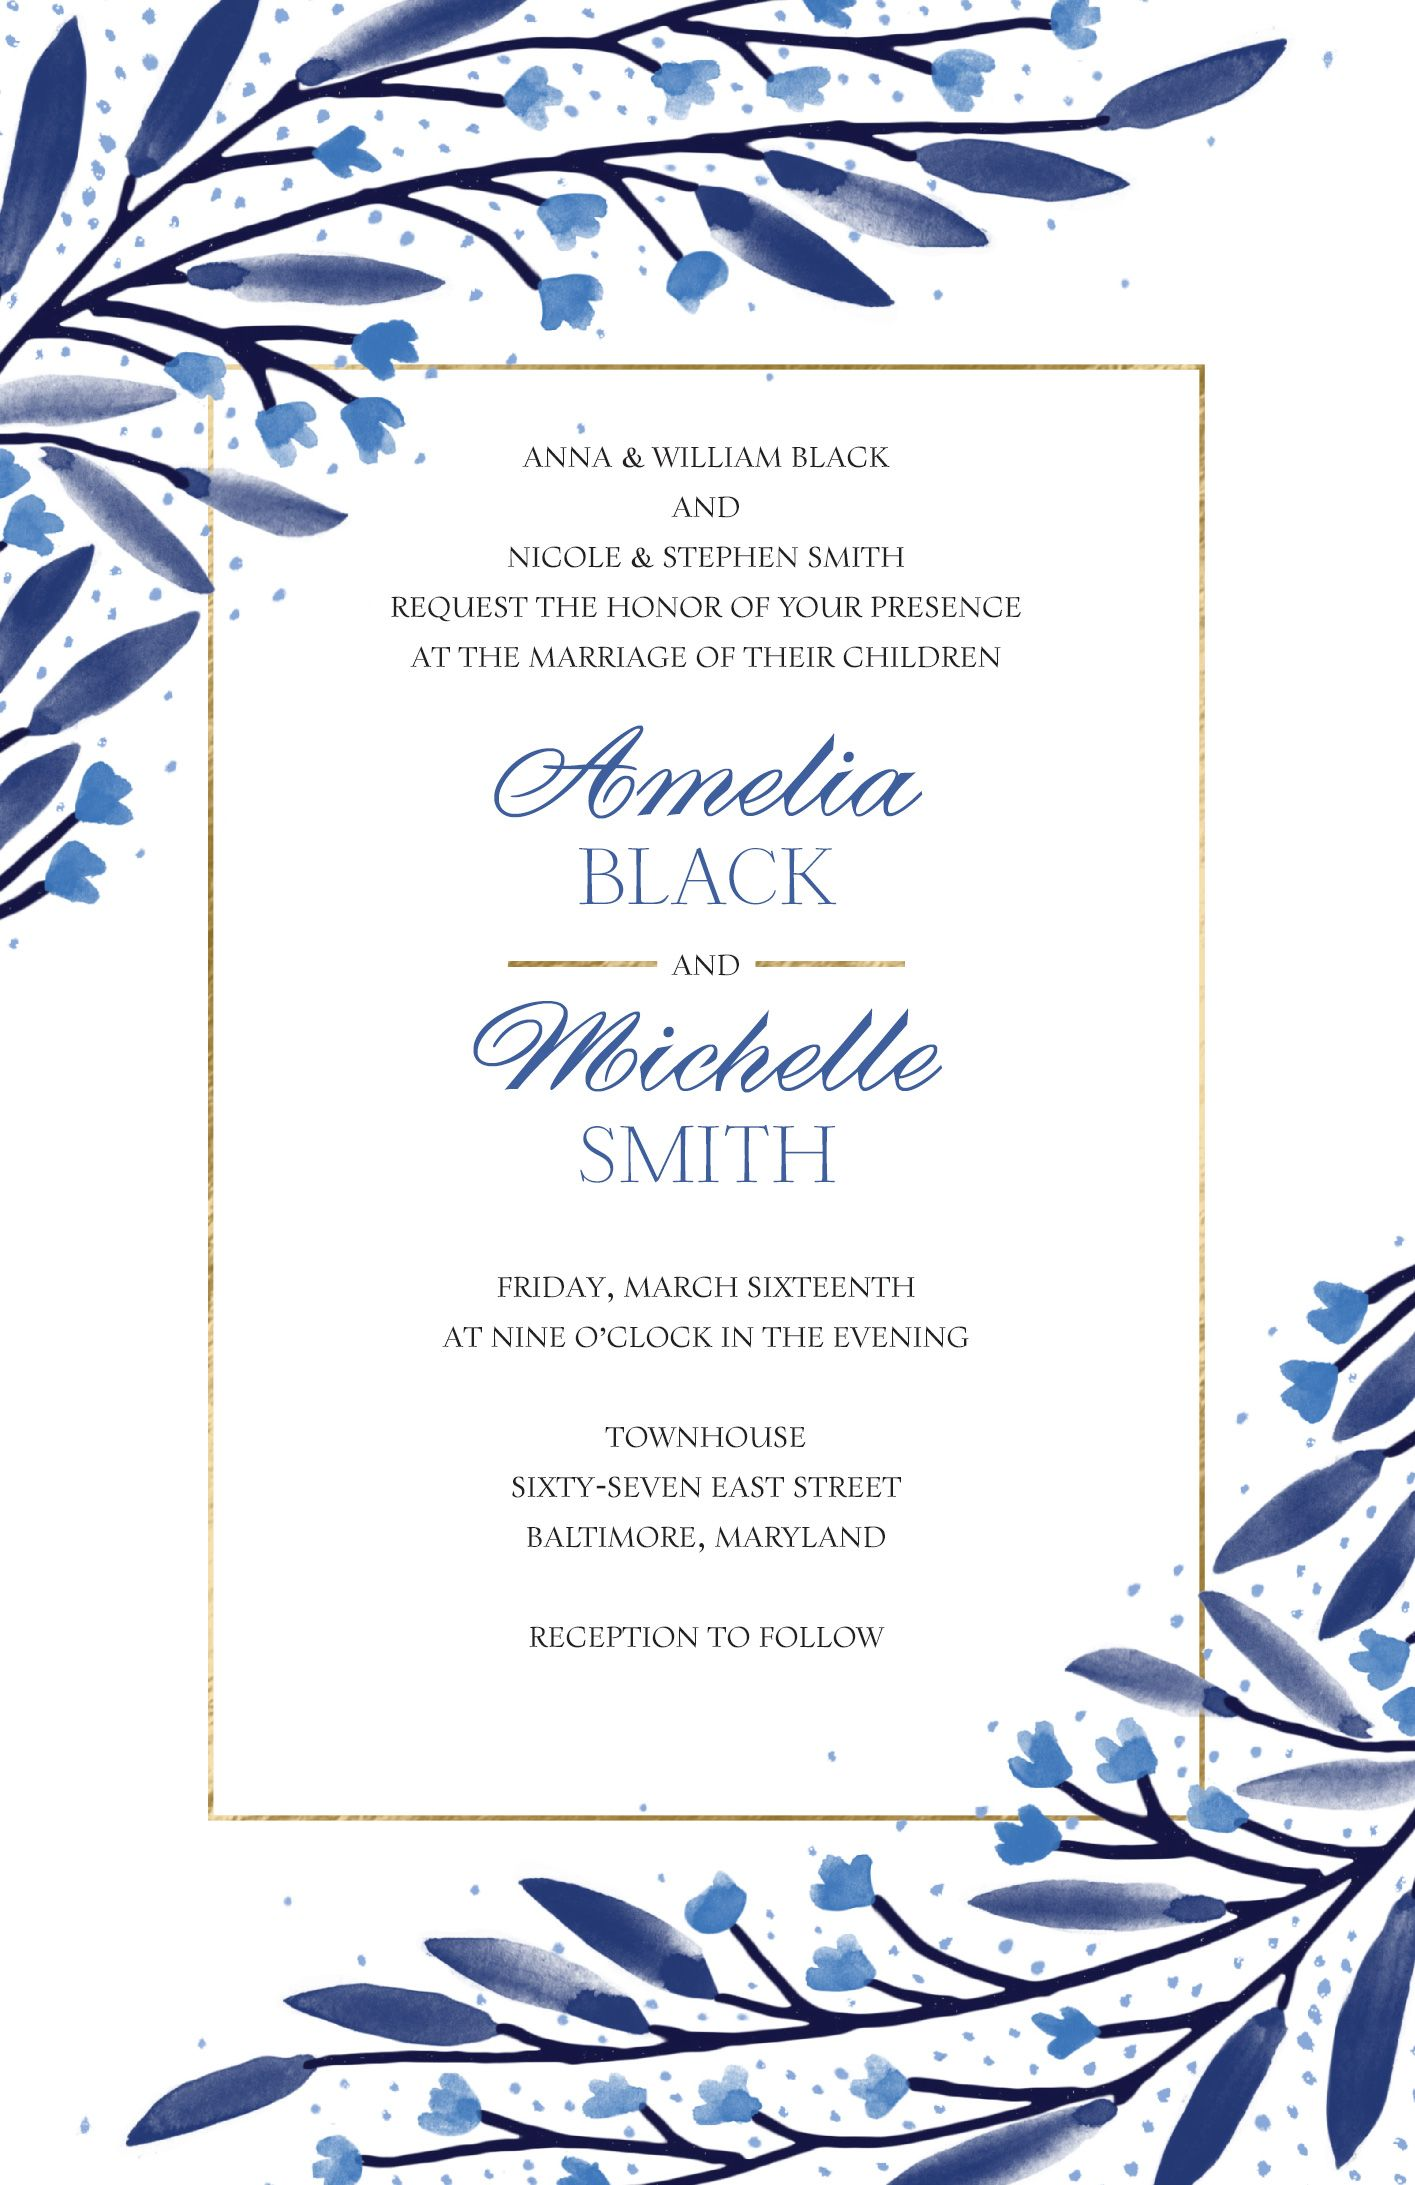 Sapphire Floral Invitations | Weddings by Vistaprint | Jewel Tones ...